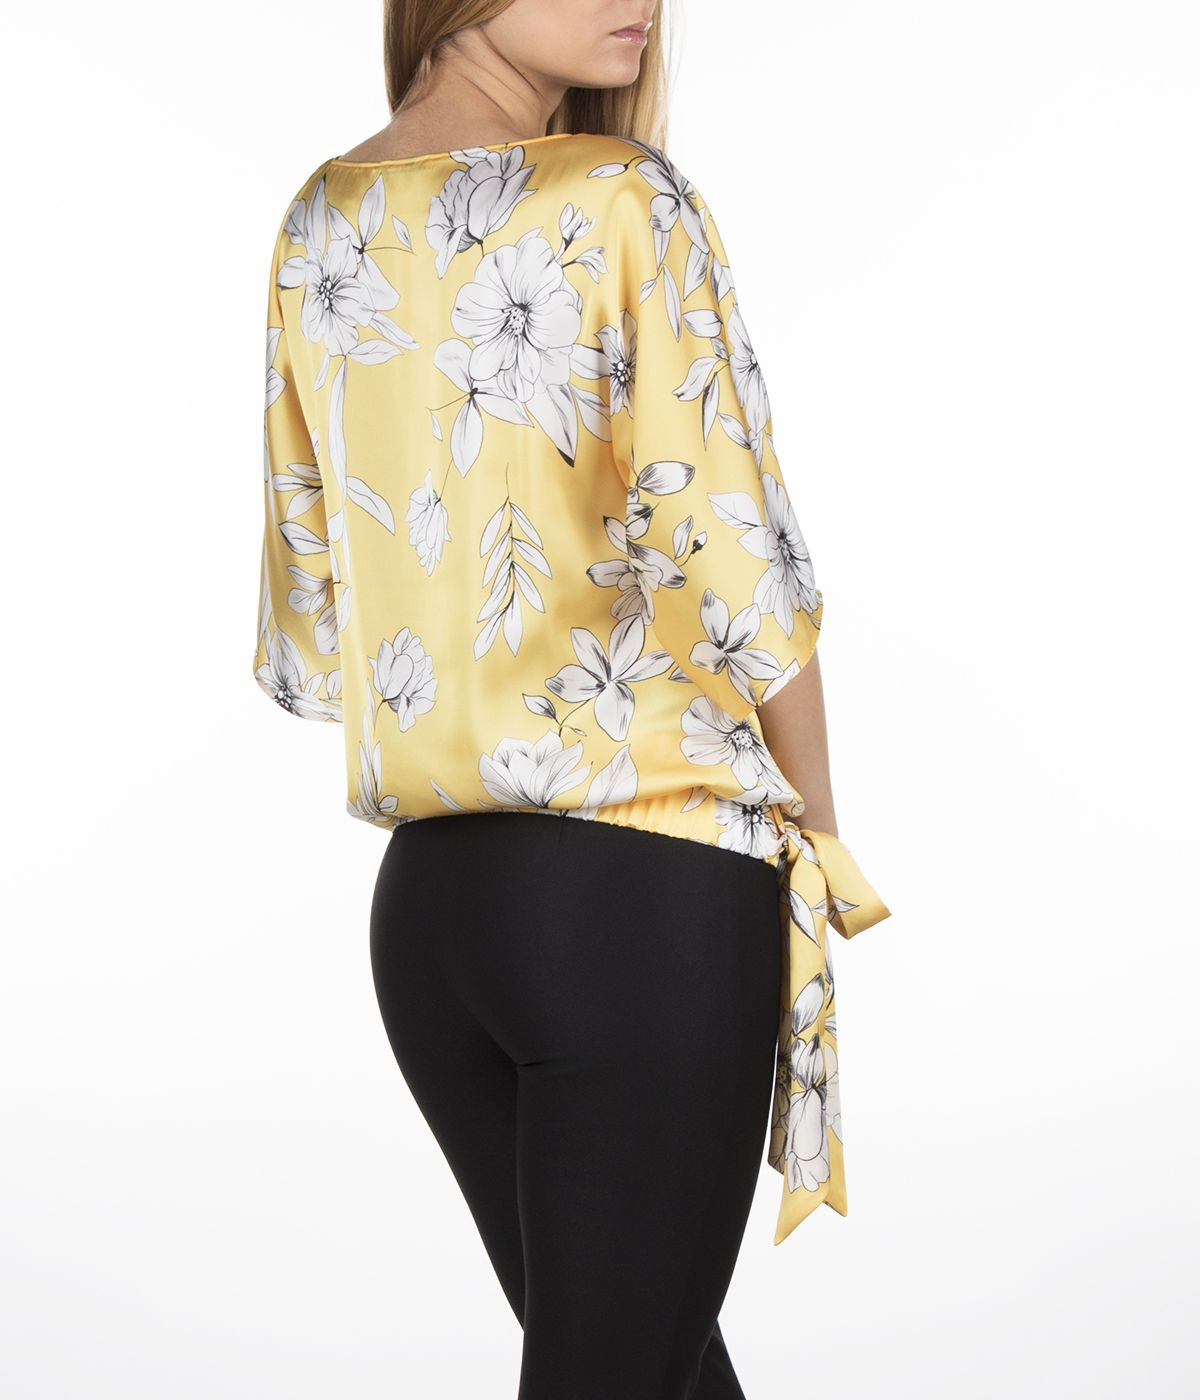 Short-sleeved blouse with tie-hem finish and flowers print 3